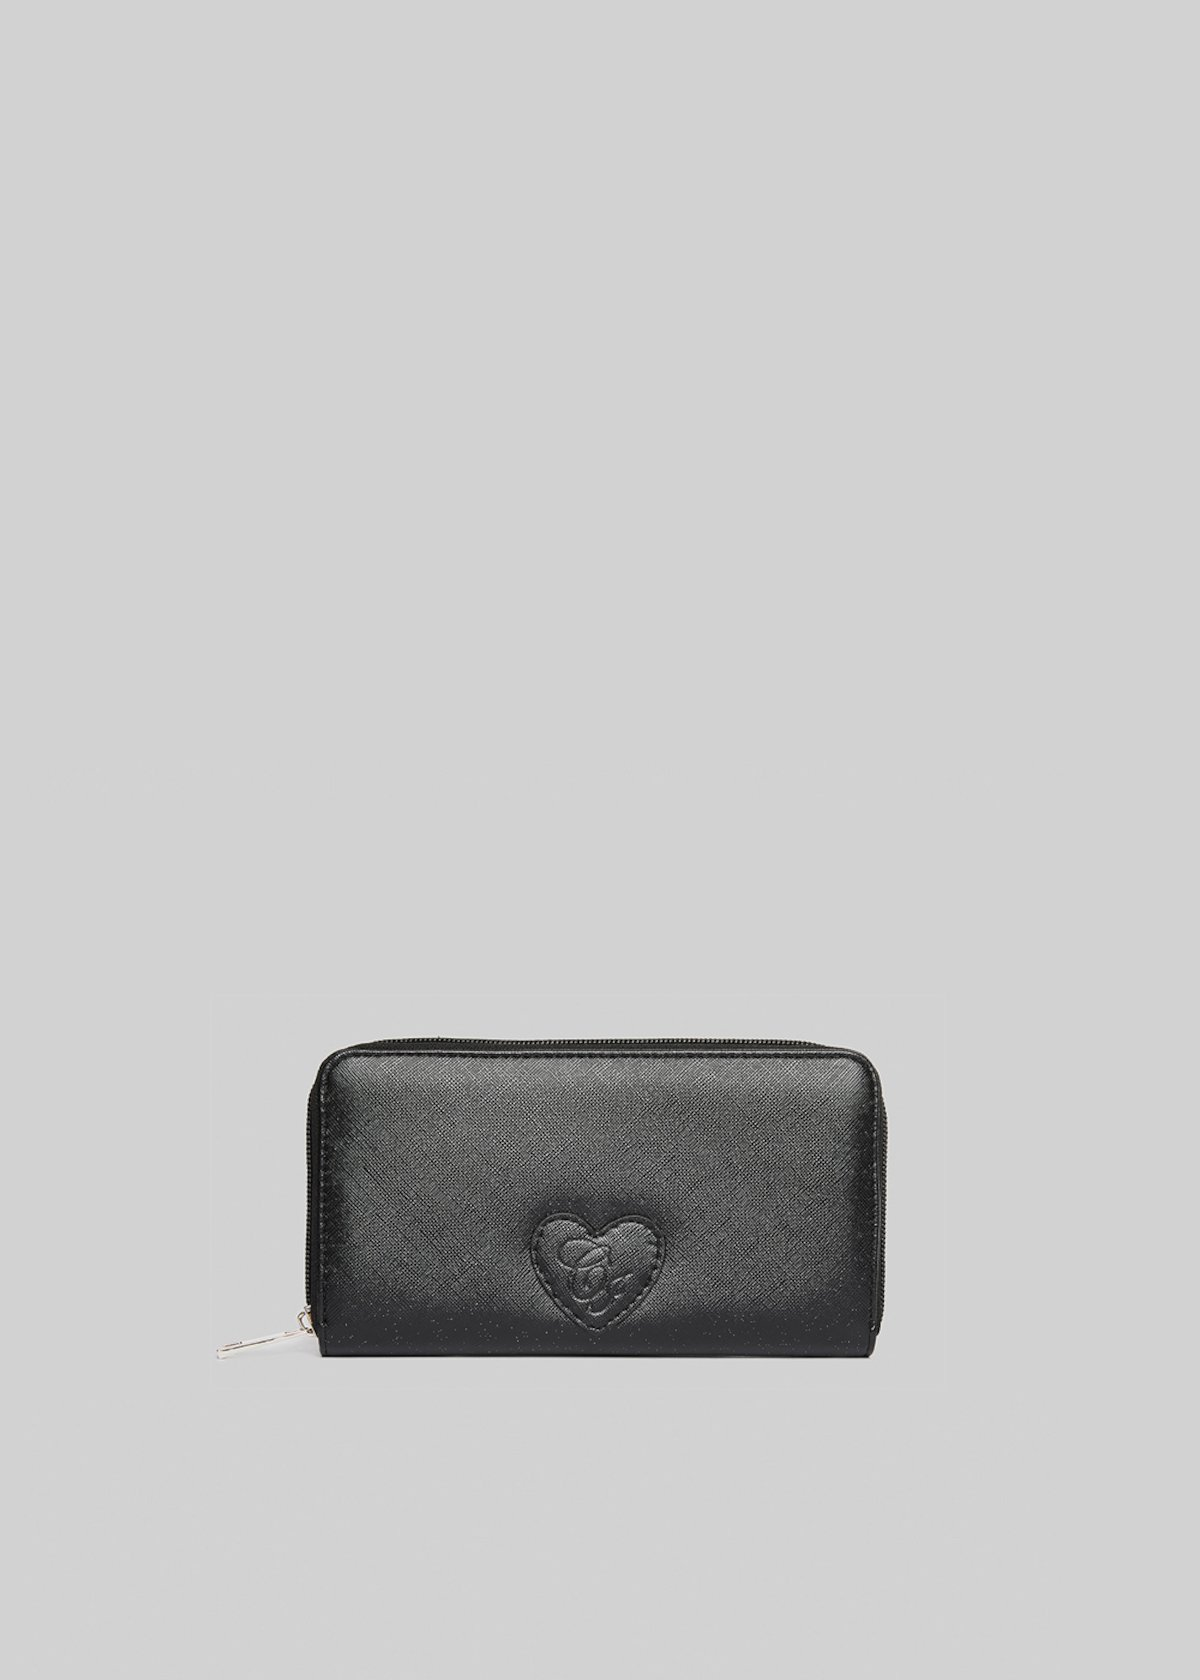 Pinkas saffiano lurex faux leather wallet with heart patch